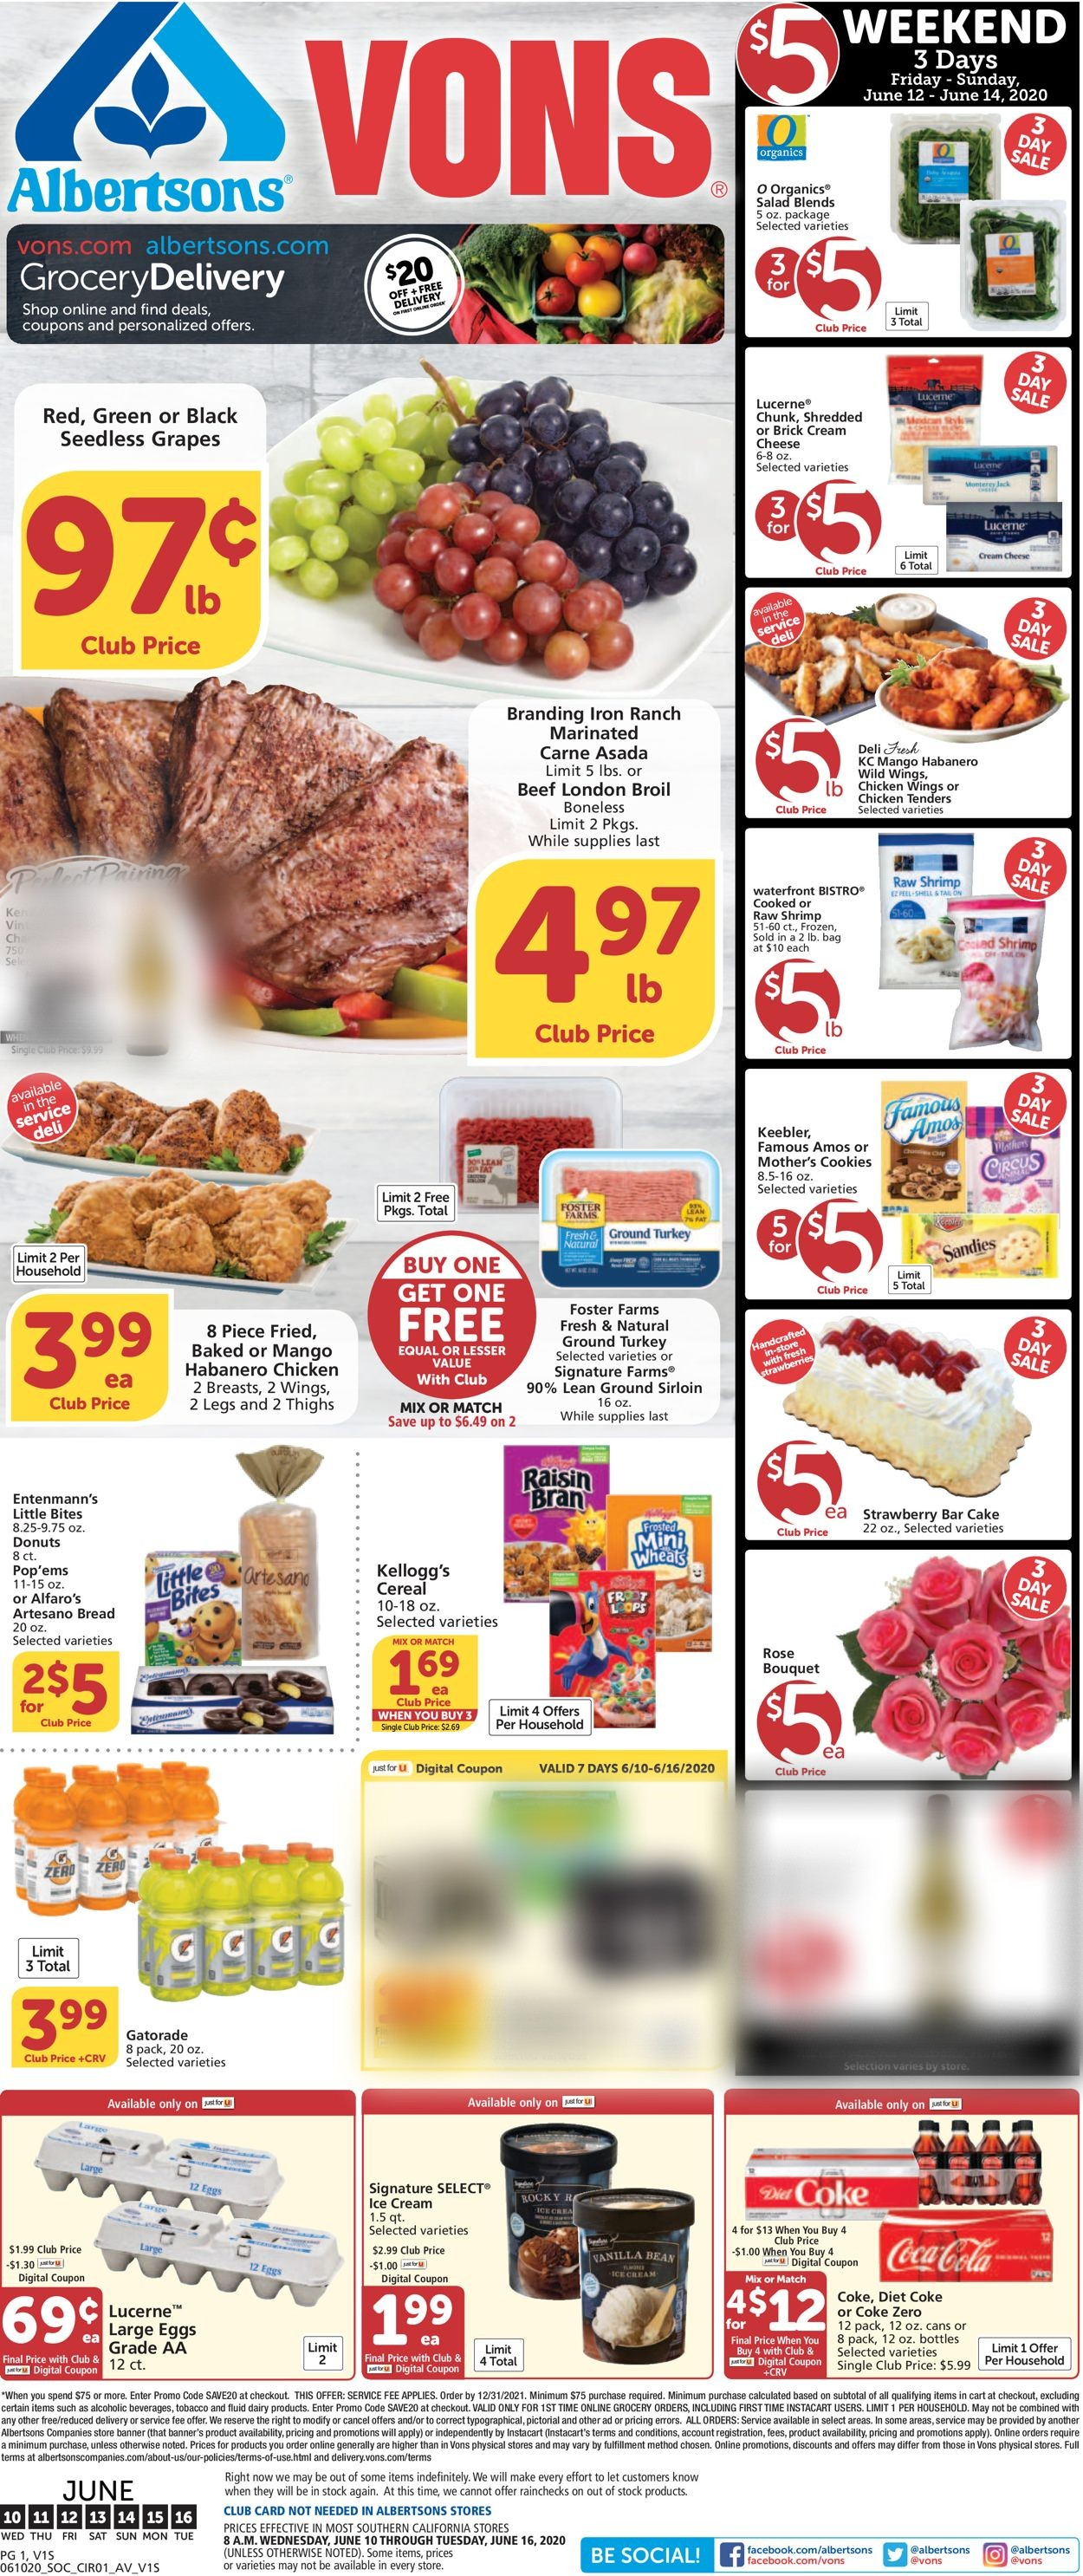 Vons weekly-ad